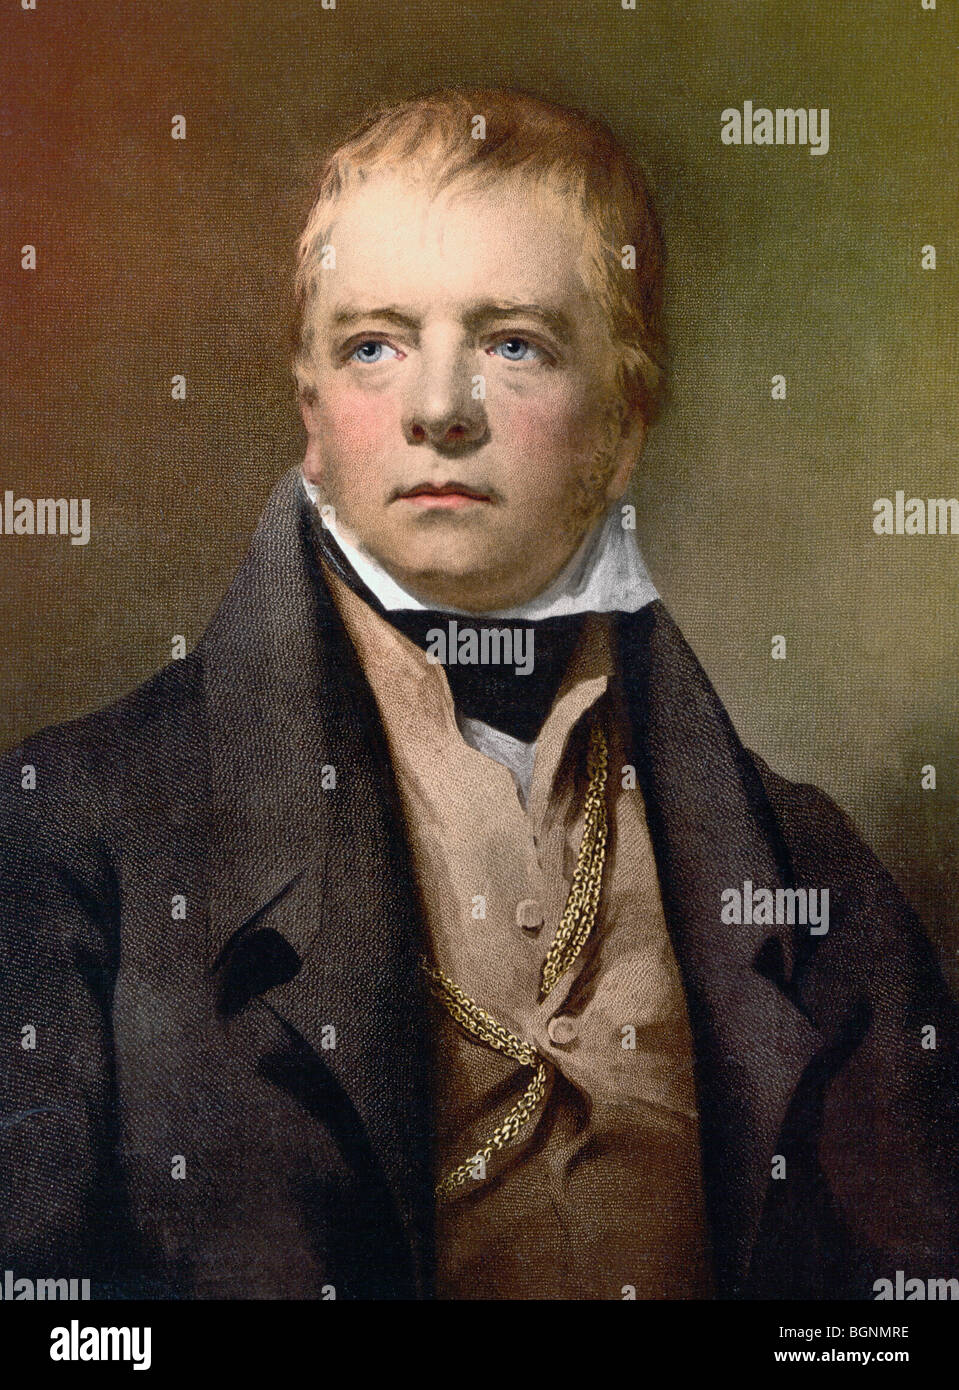 Sir Walter Scott 1771 to 1832. Scottish novelist, poet, historian and biographer. - Stock Image